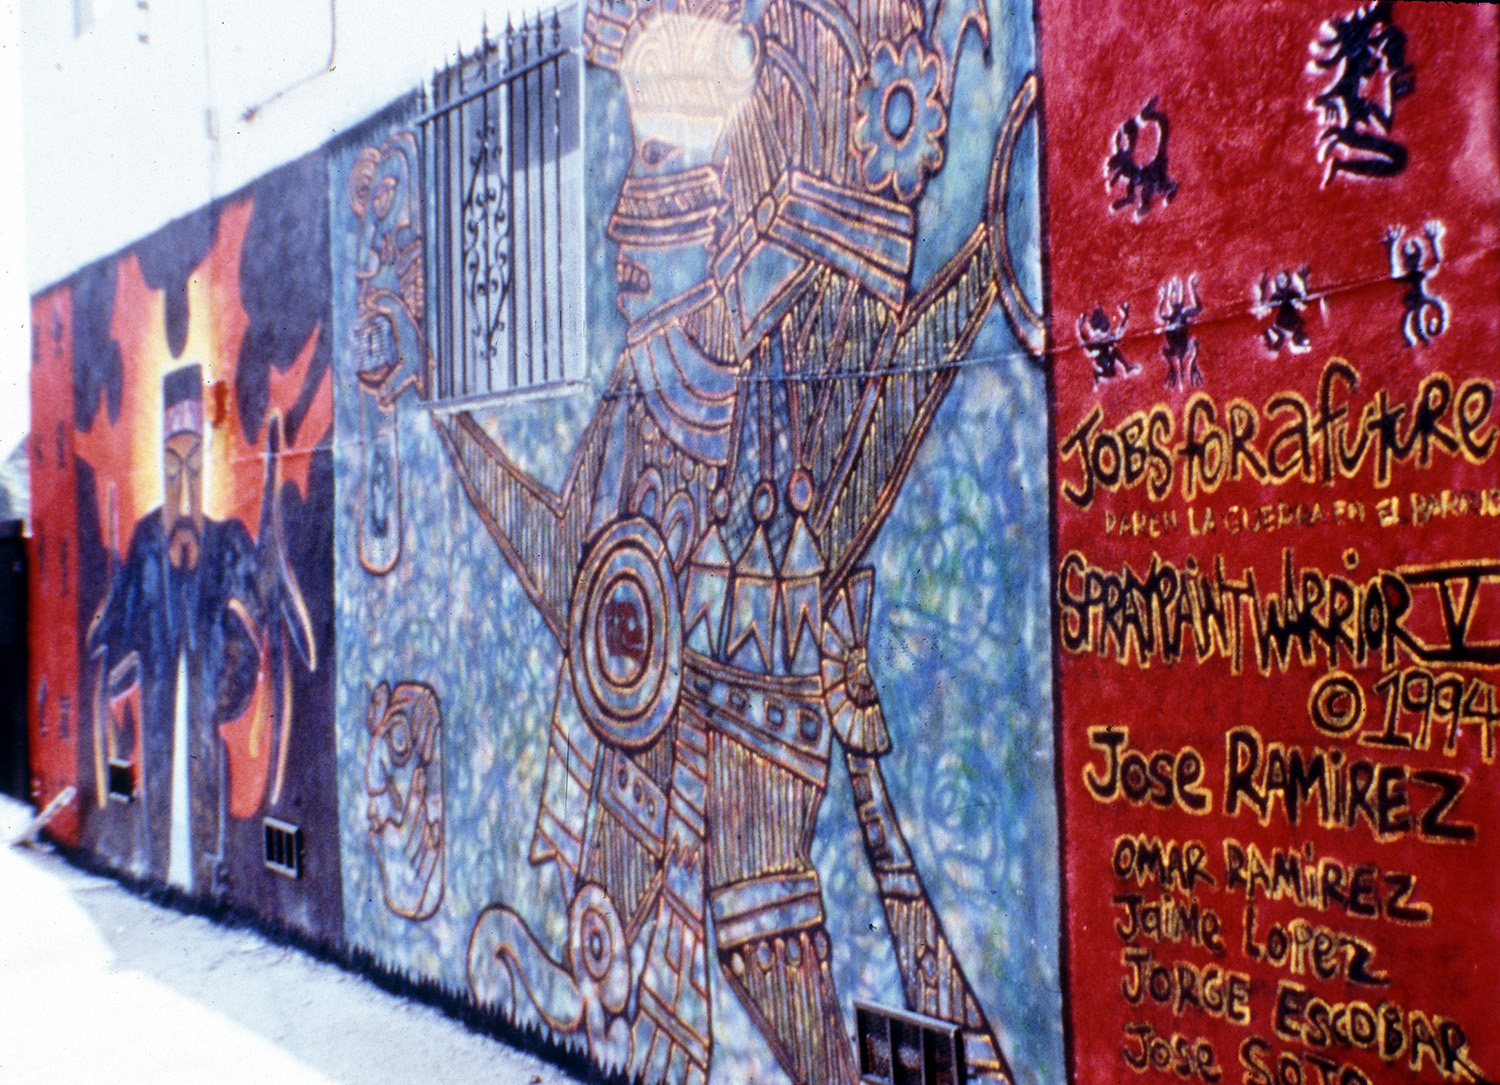 Spraypaint Warrior, East Los Angeles, California, 1995.